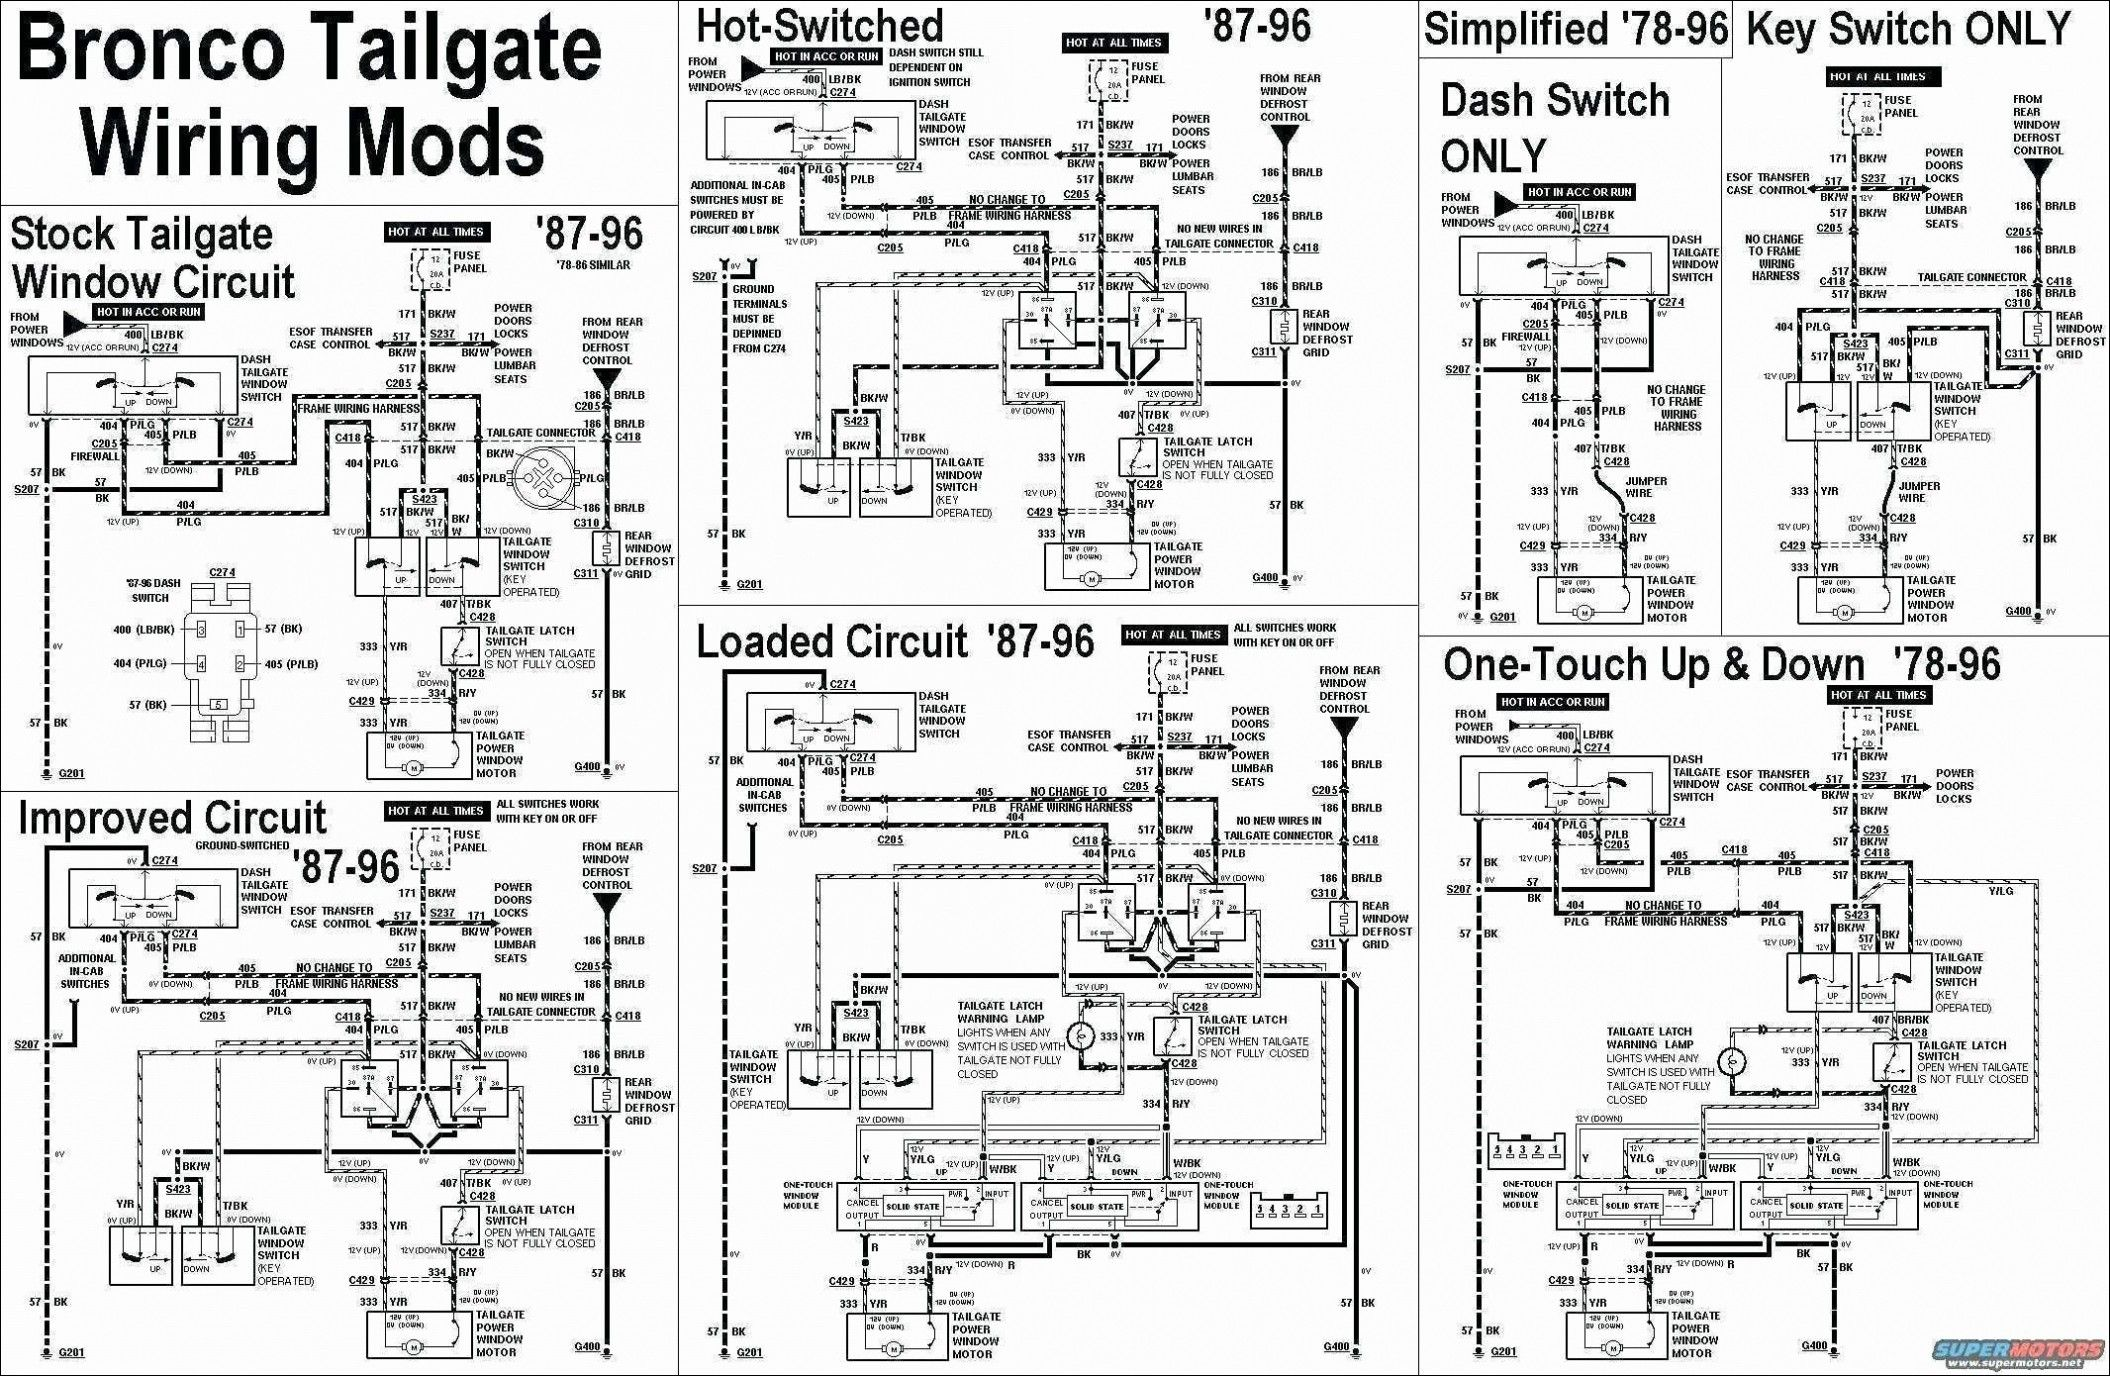 New Johnson Ignition Switch Wiring Diagram  Diagram